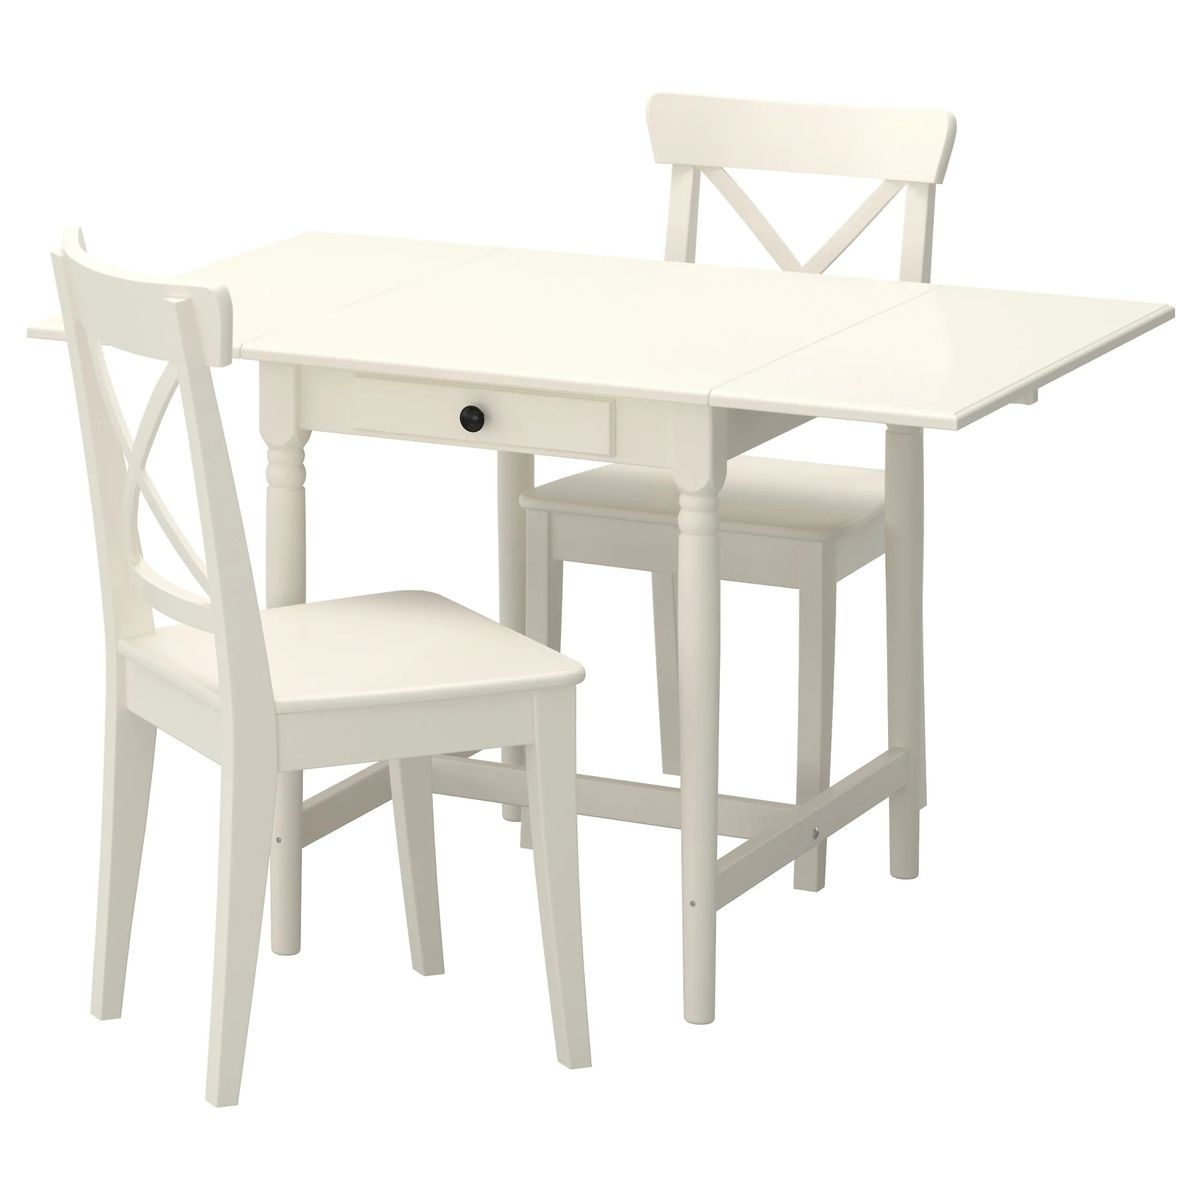 Ikea Breakfast Table: Small Dining Tables For Apartments